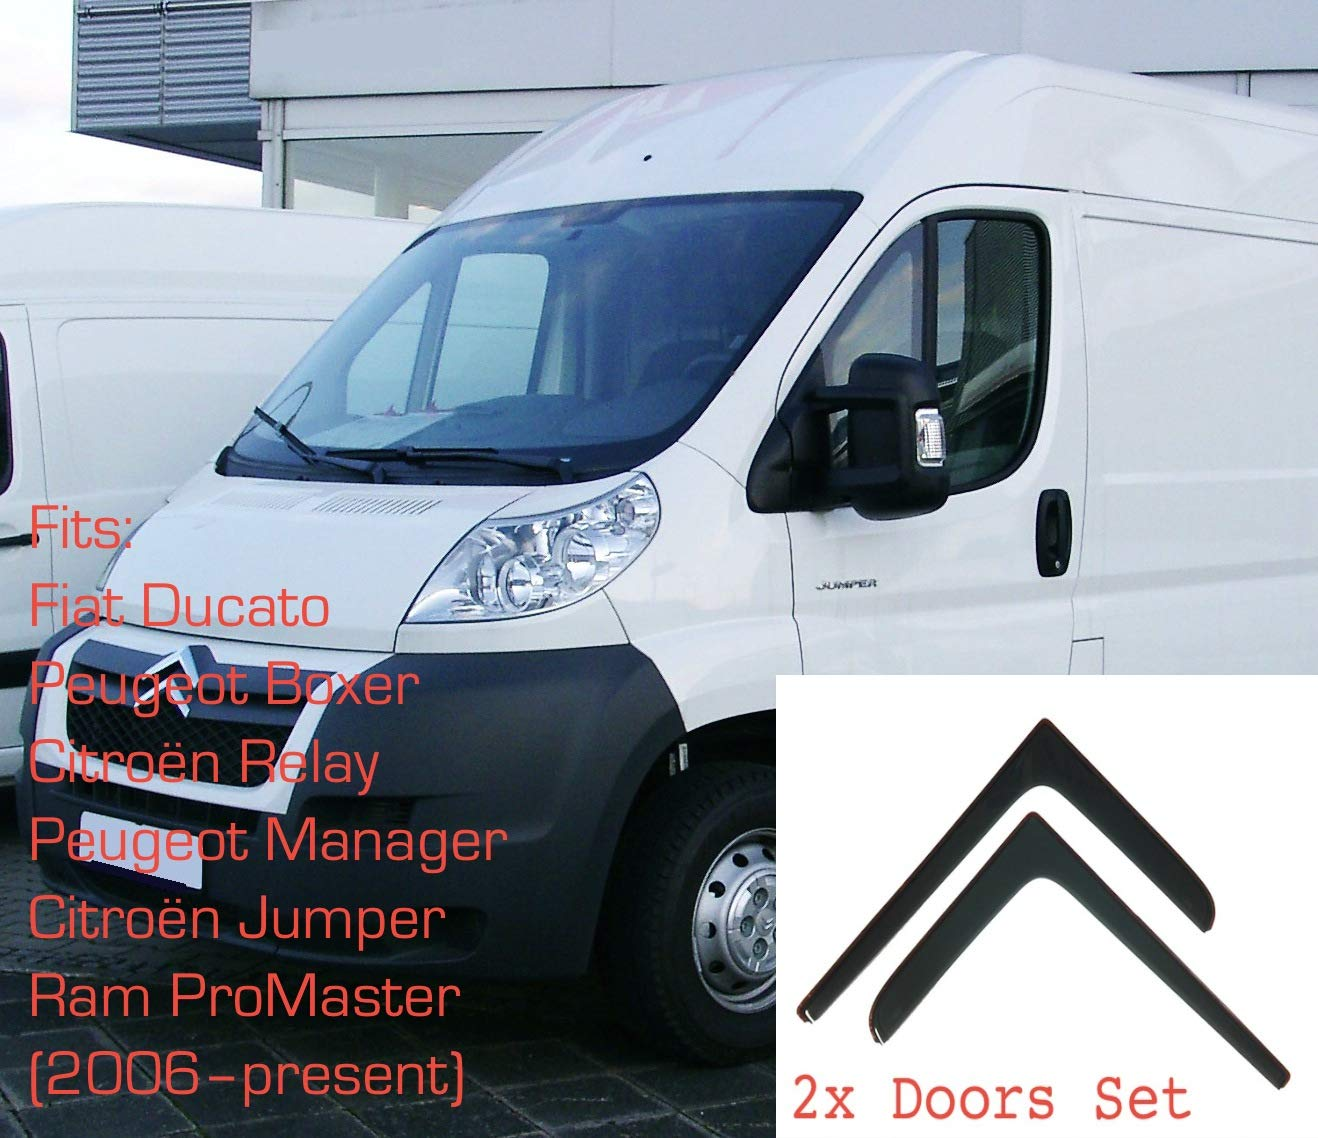 Peugeot Boxer Citroen Jumper 2006-onwards In-Channel Antiturbo Per Auto Vetro Acrilico Anti Vento Guardia di Pioggia Sole Neve 2x Deflettori DAria Fiat Ducato